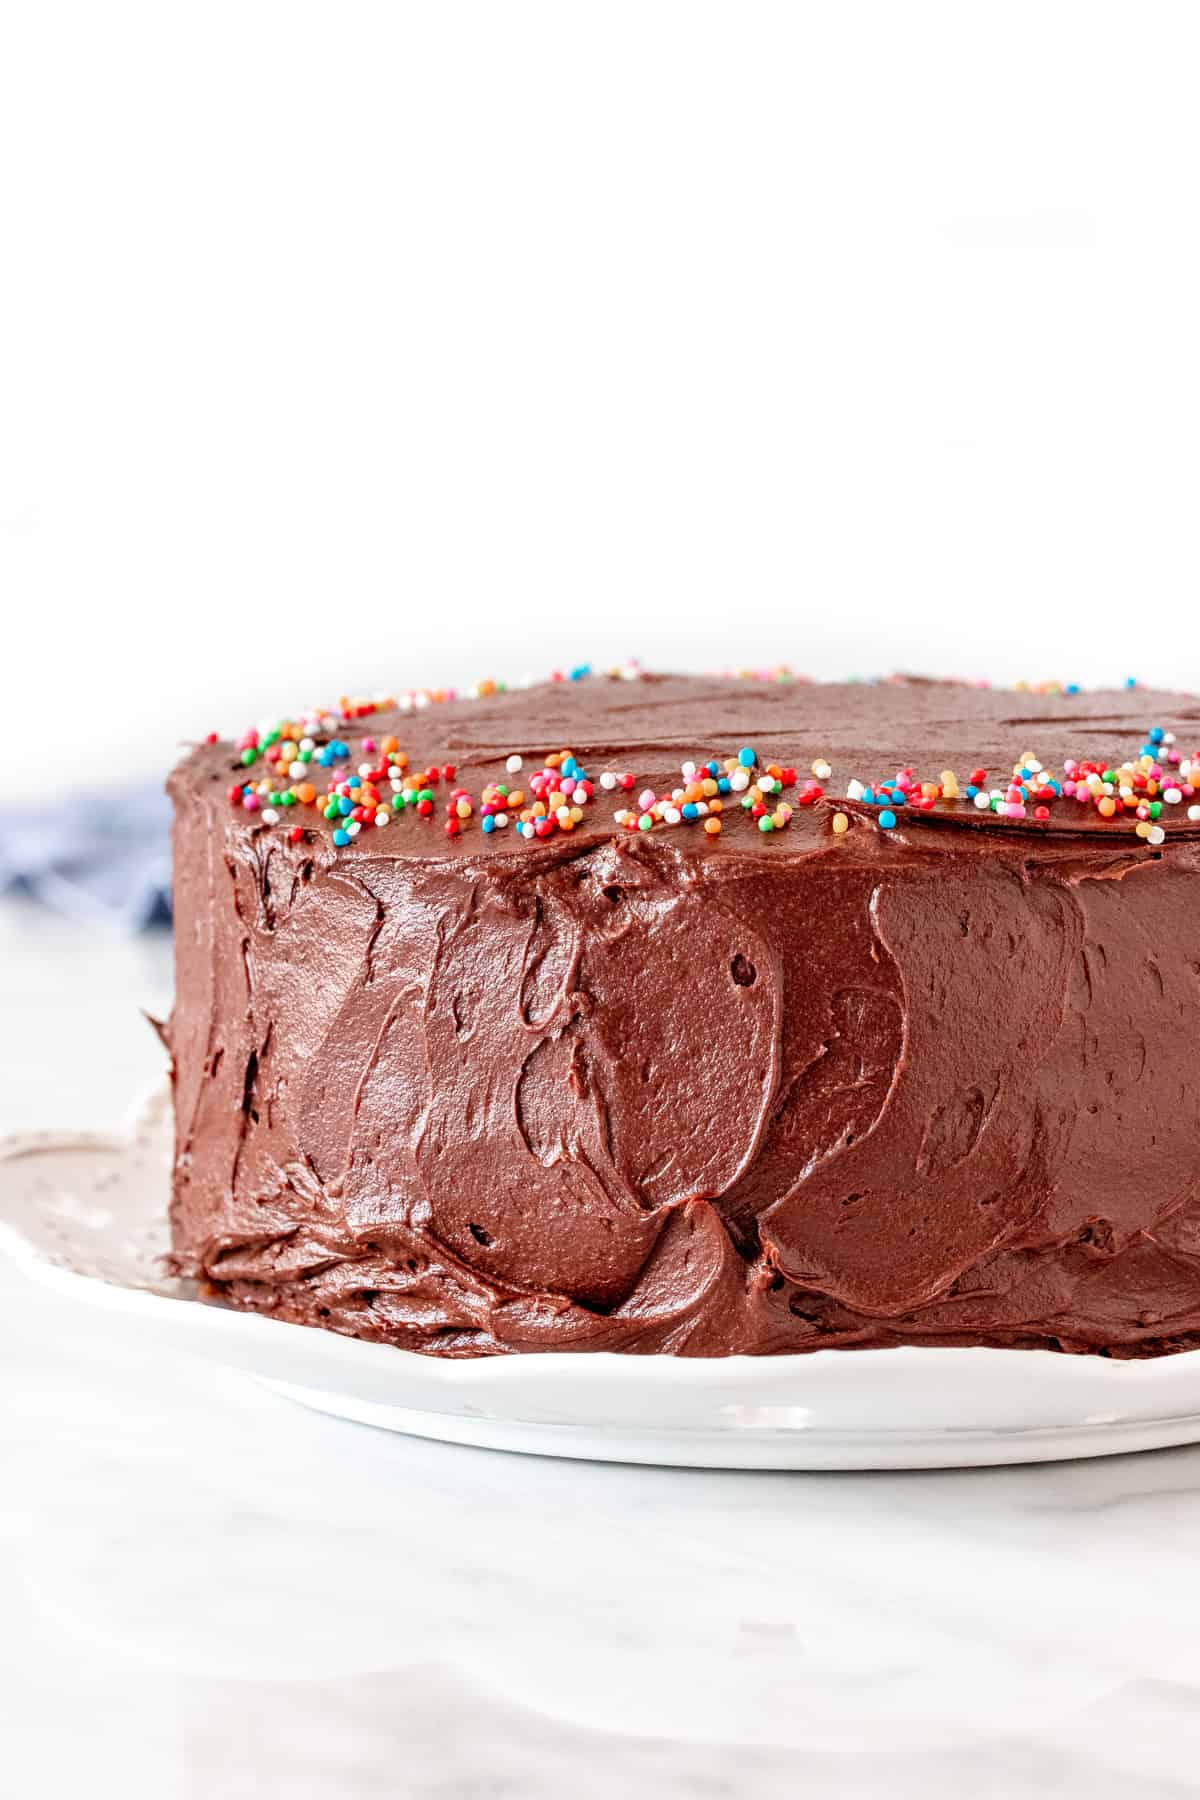 Round layer cake with chocolate frosting